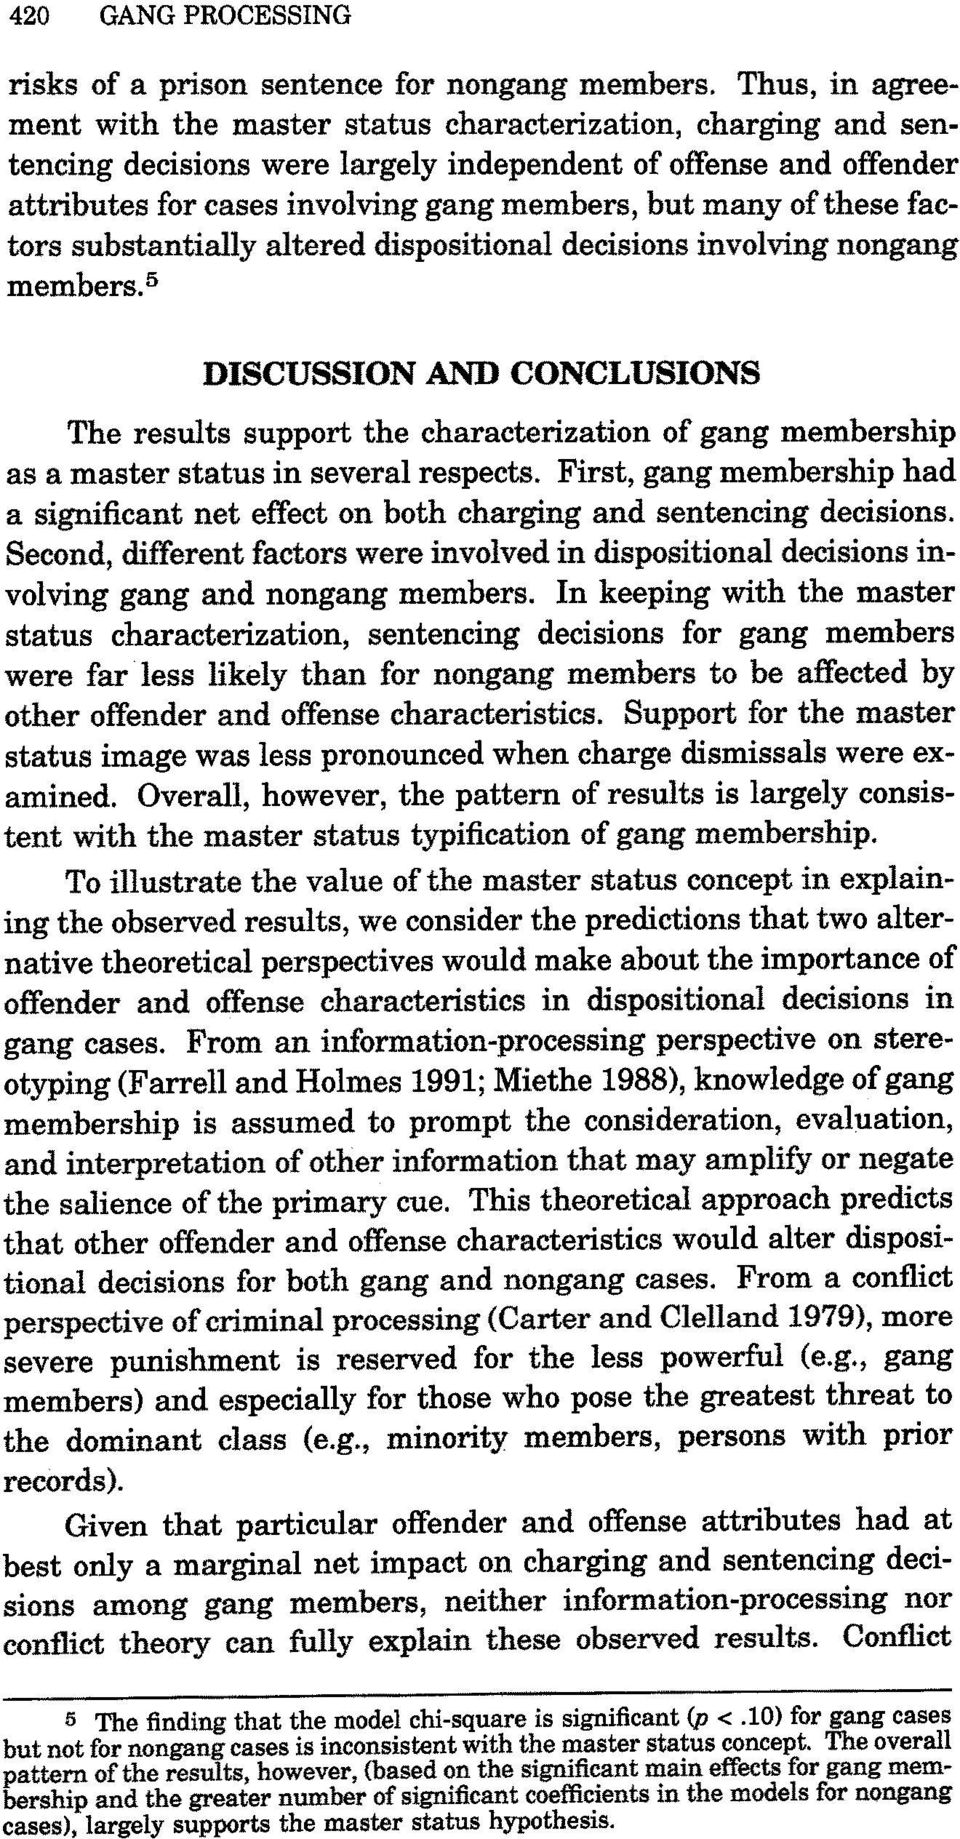 these factors substantially altered dispositional decisions involving nongang members.